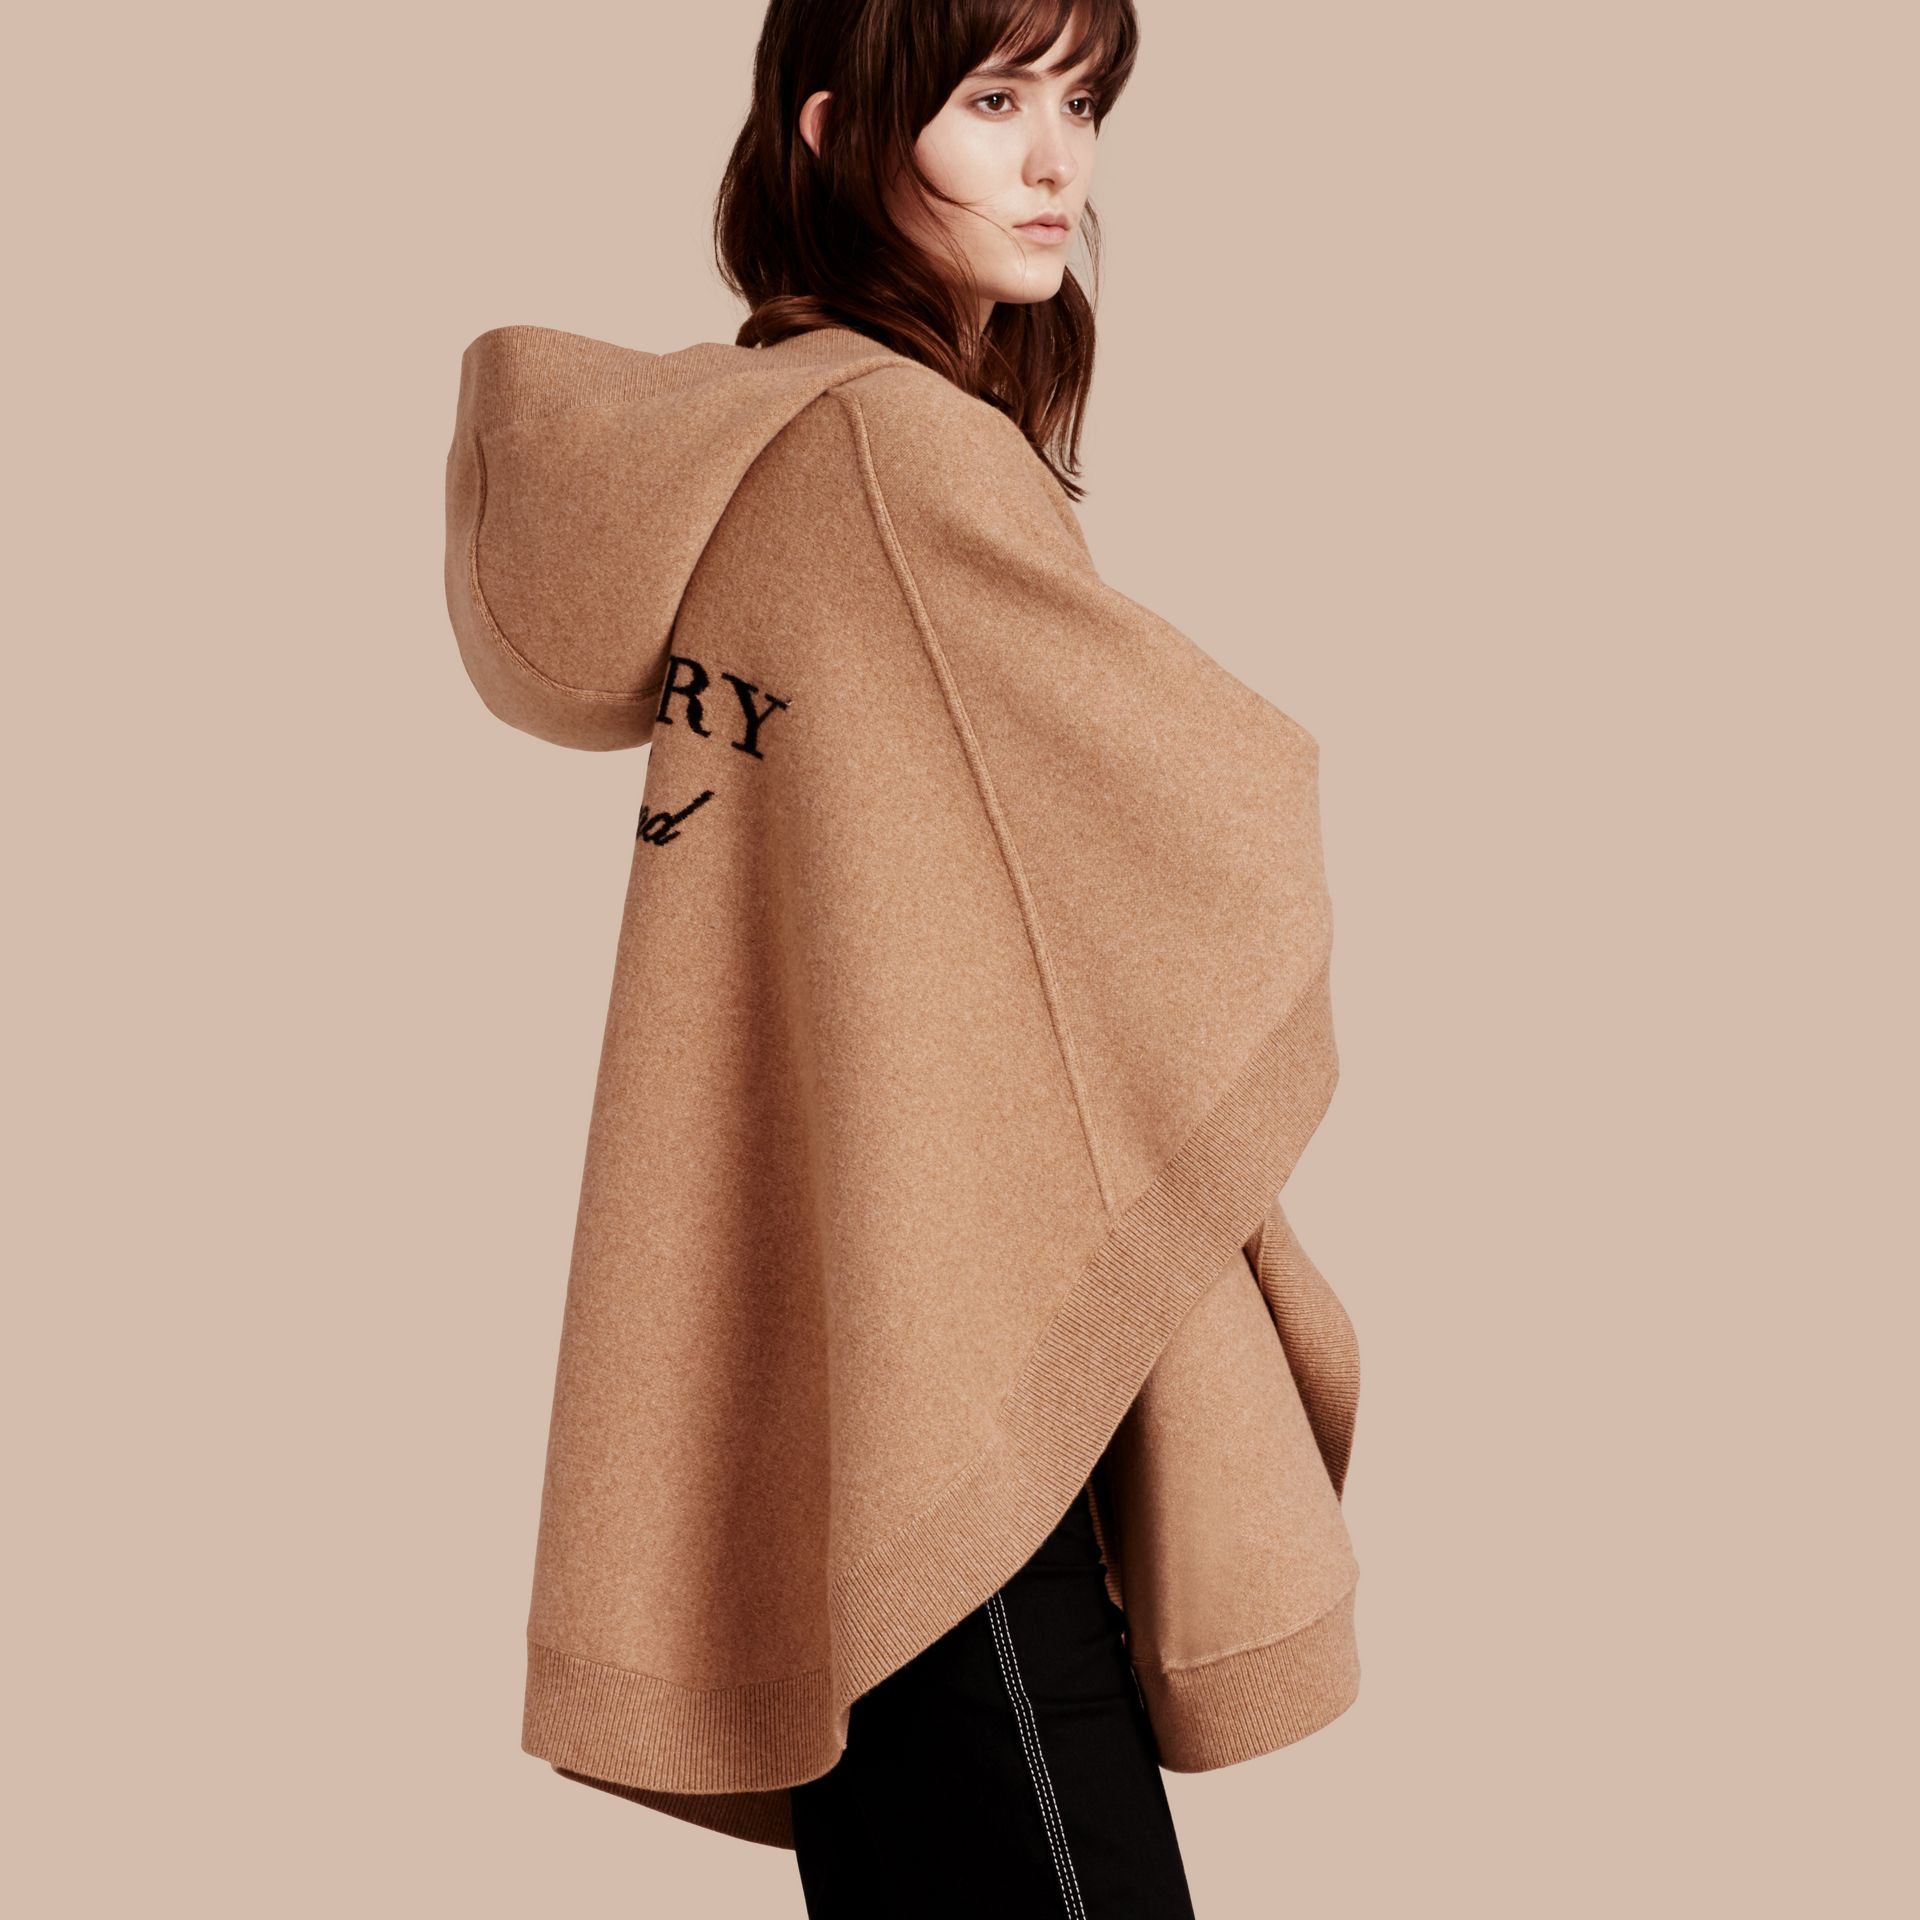 Camel Wool Cashmere Blend Hooded Poncho Camel - gallery image 1